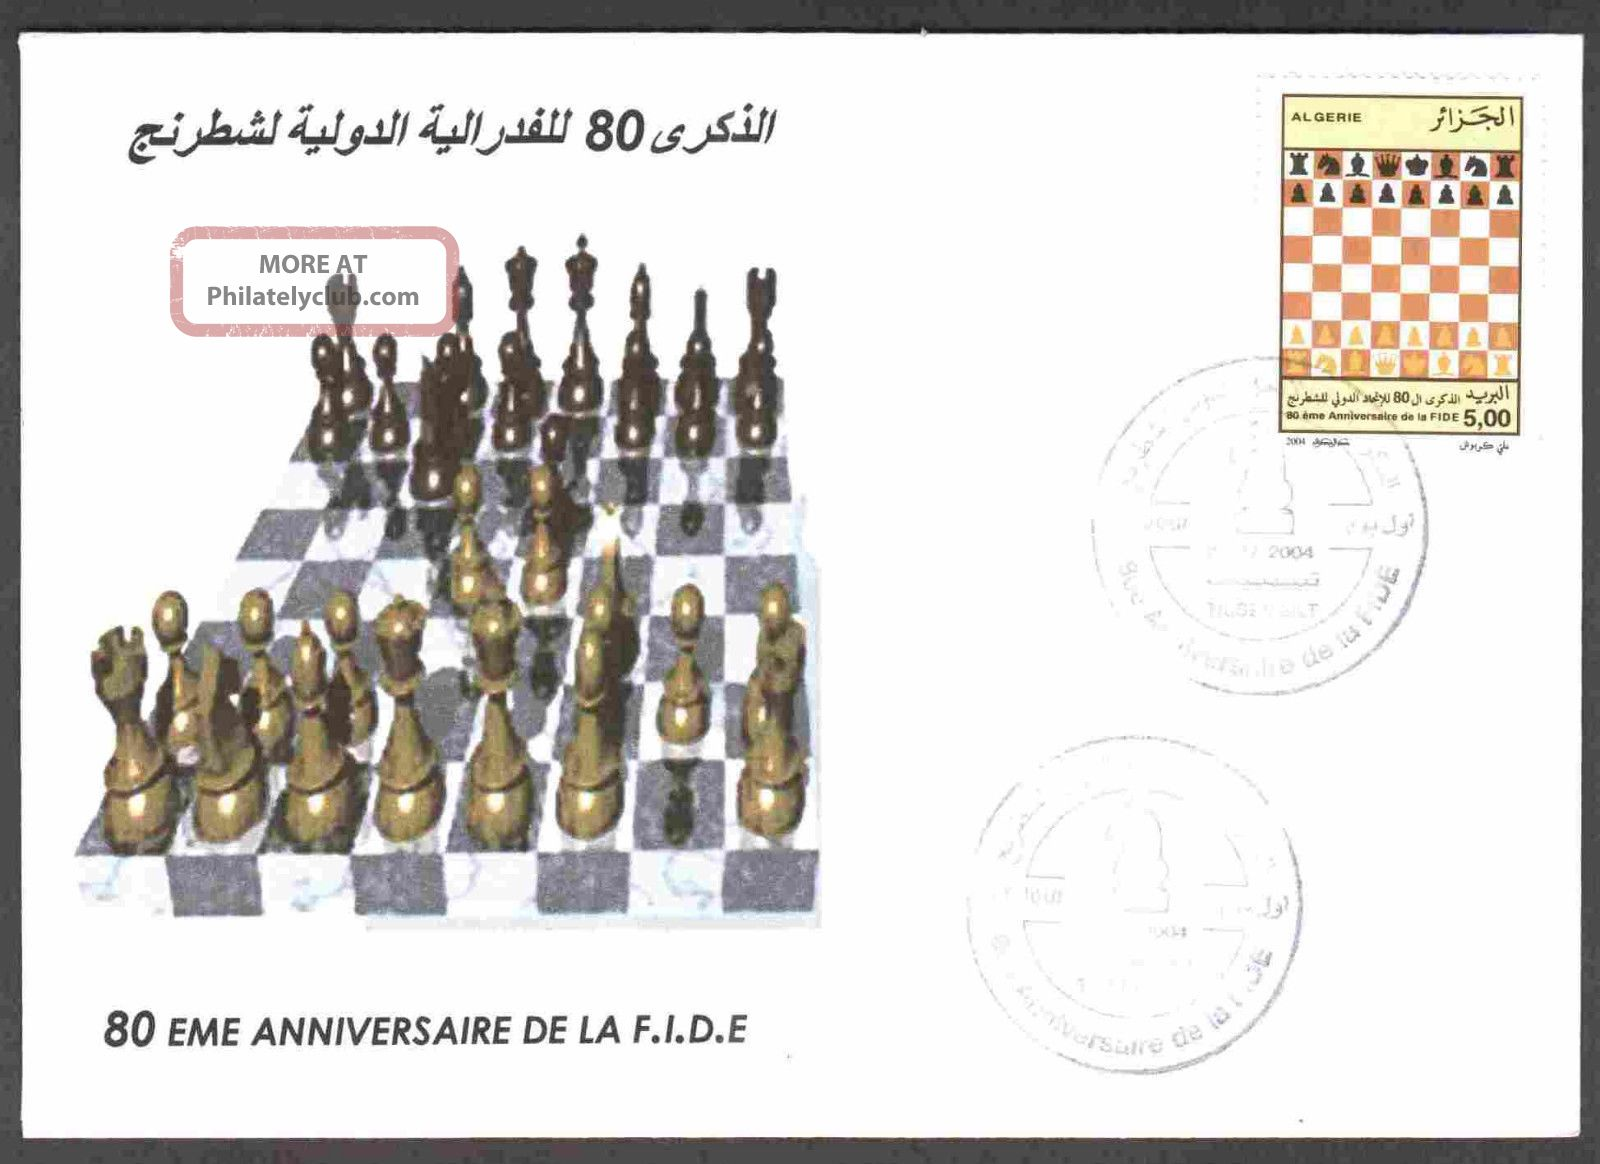 Algeria 2004 - Chess,  Scott 1310 - Fdc With Topical Cancel (tissemsilt) Sports photo